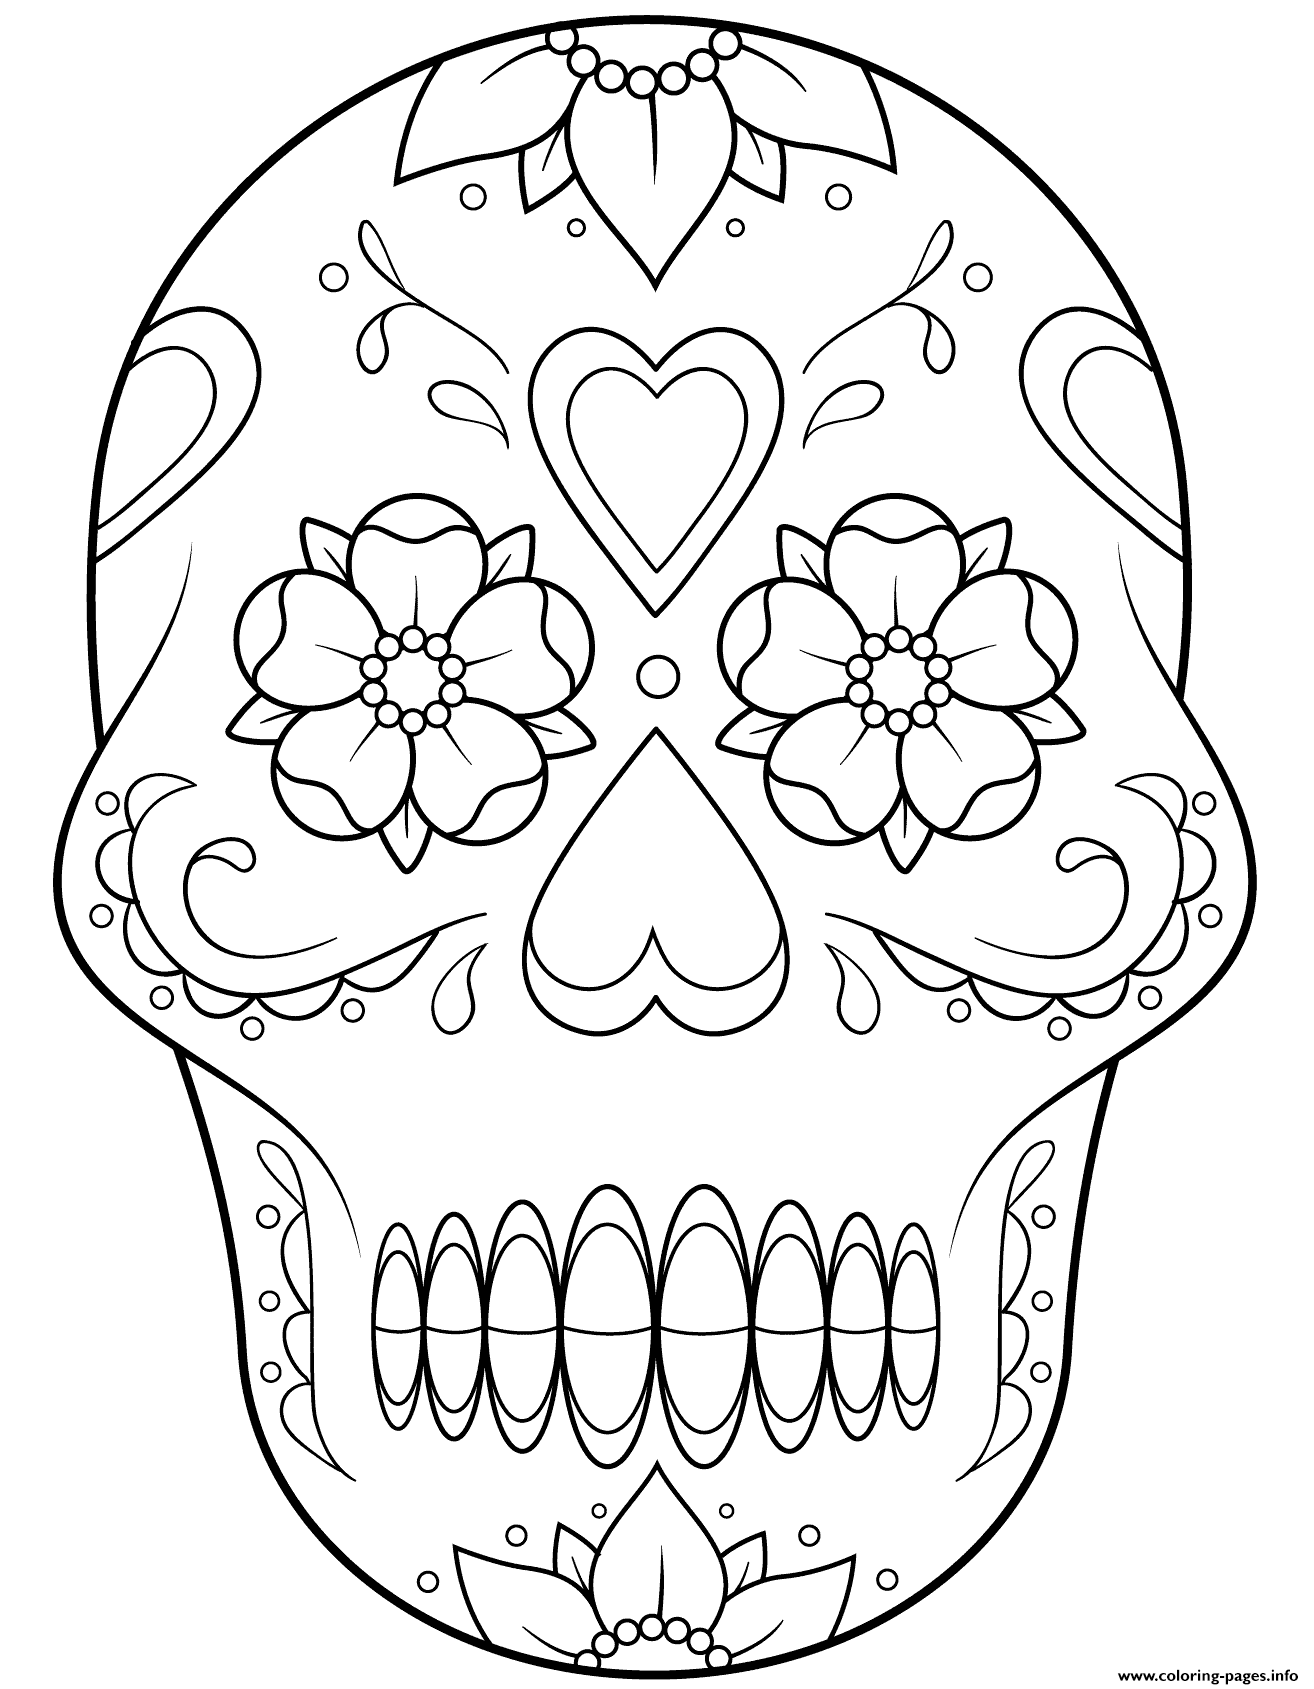 Print sugar skull 2 calavera coloring pages Skull